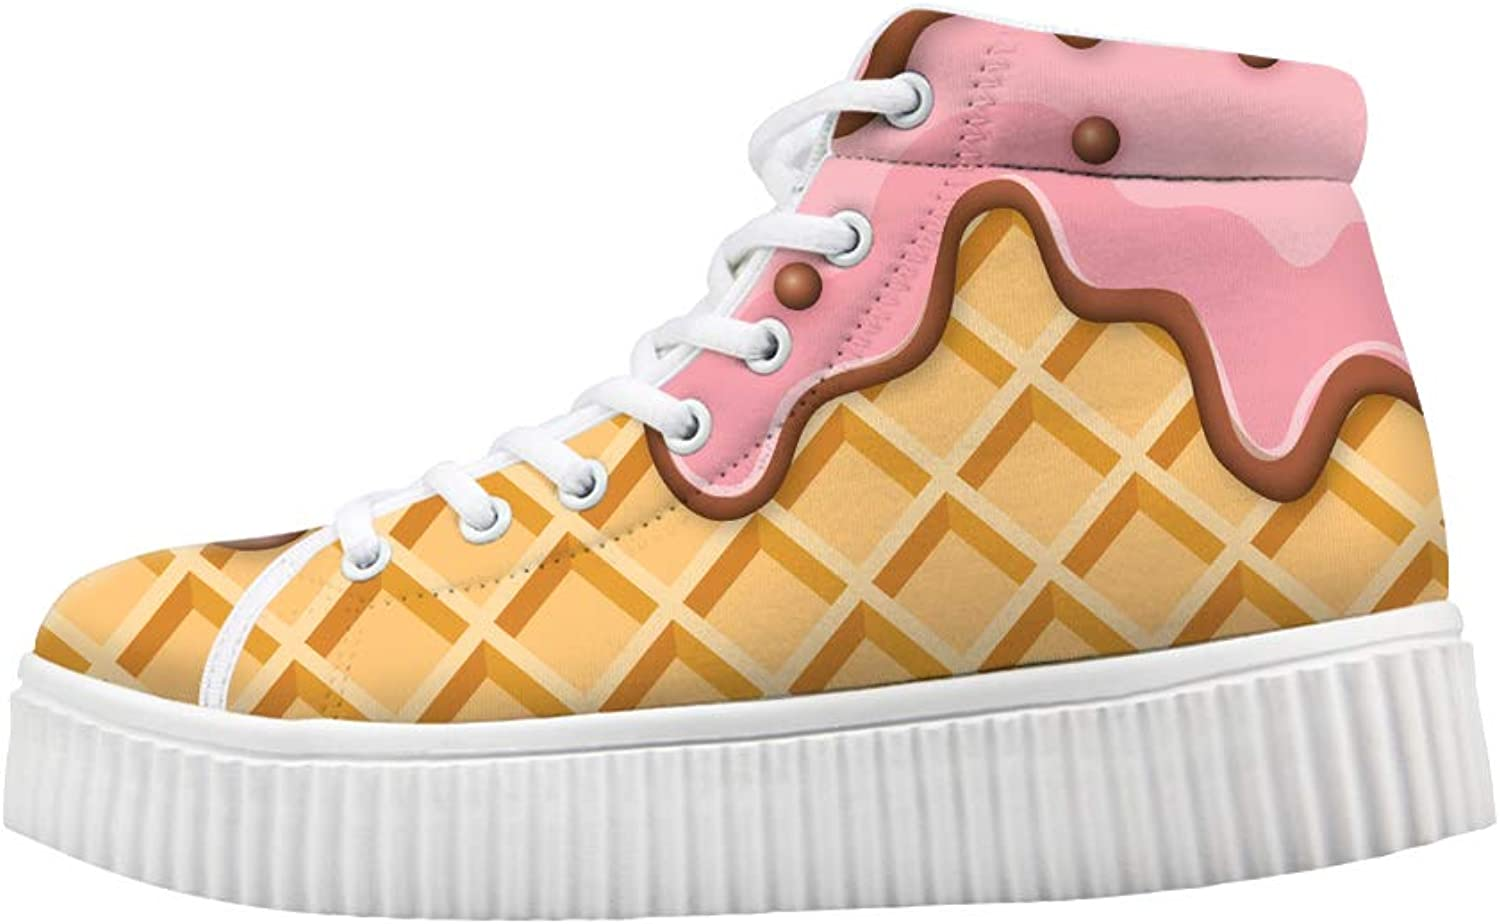 Owaheson Platform Lace up Sneaker Casual Chunky Walking shoes High Top Women Melting Strawberry Ice Cream Waffle Plaid Pattern